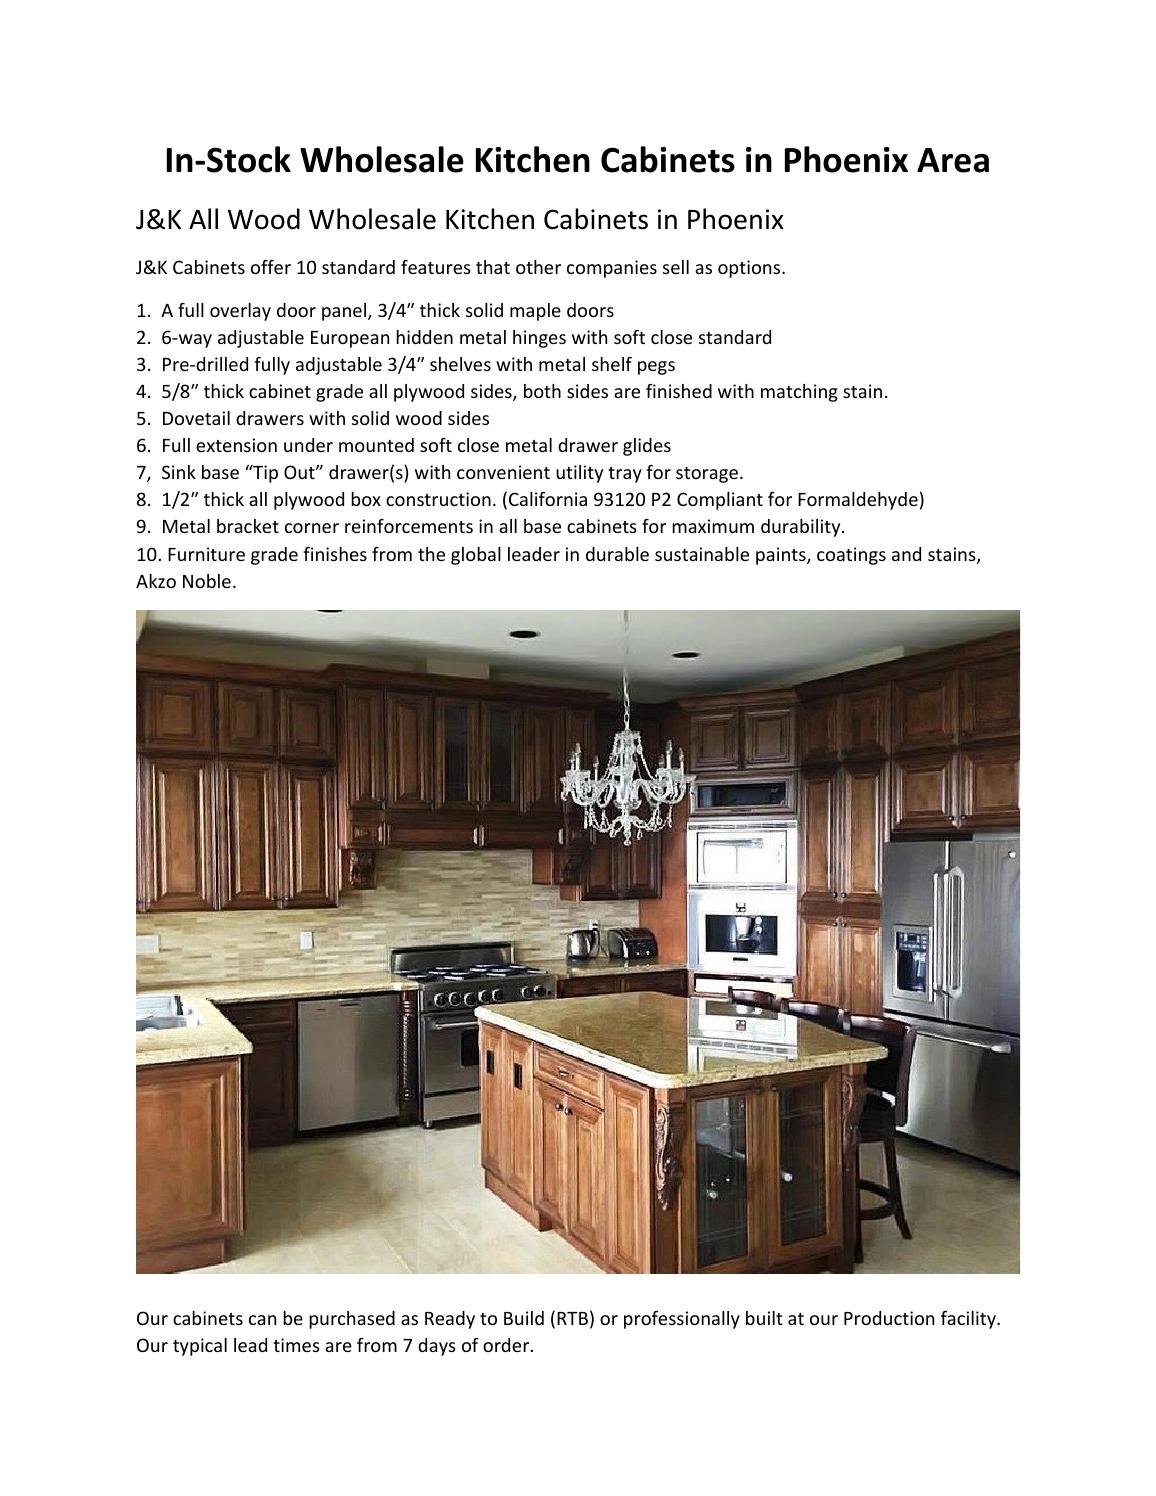 In Stock Wholesale Kitchen Cabinets In Phoenix Area By